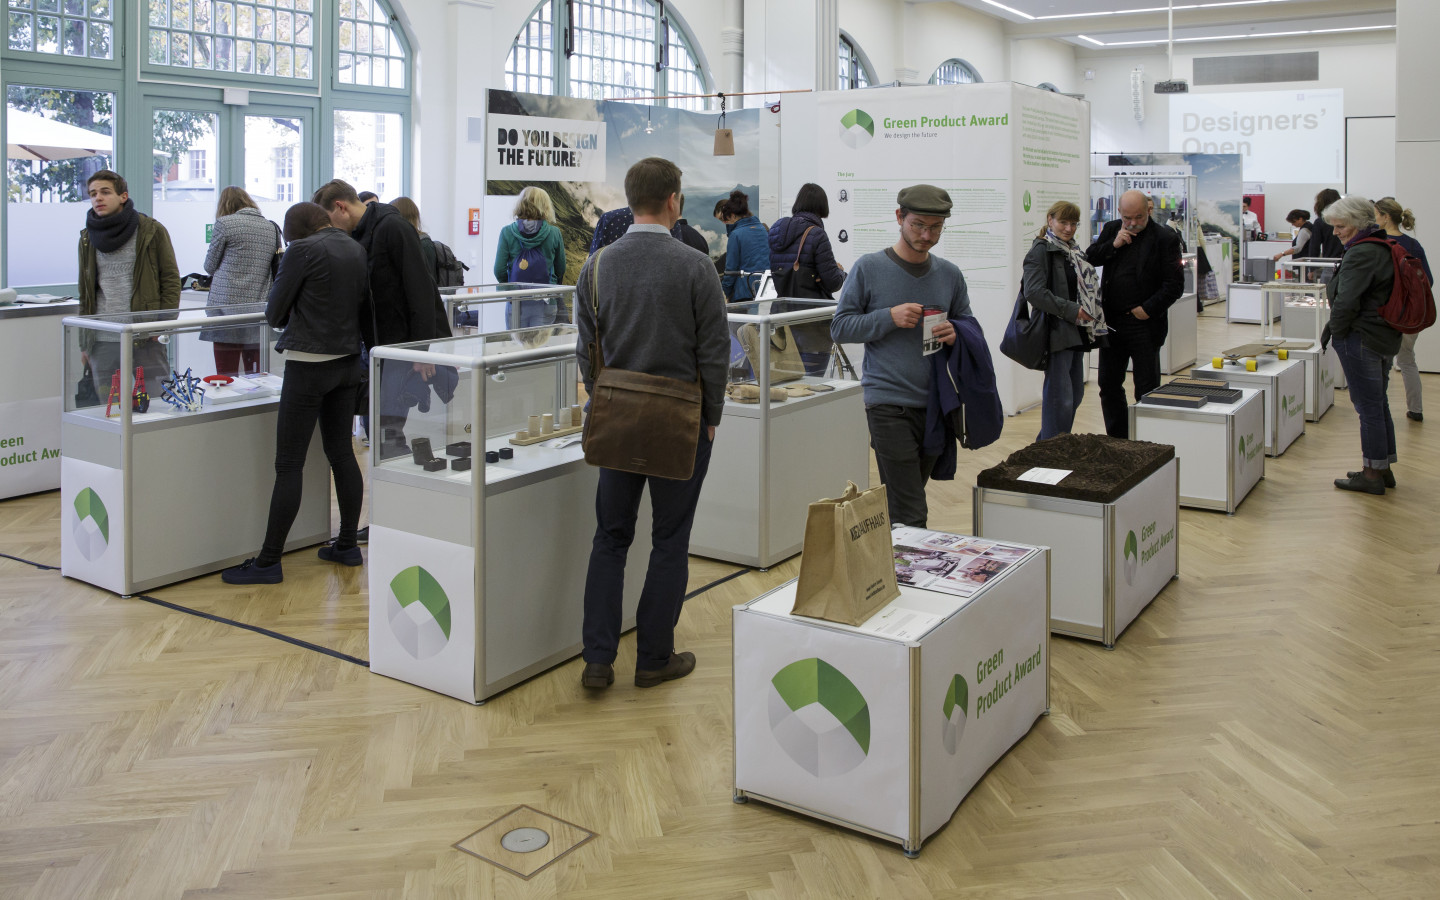 Green Product Award 2016 at Designers' Open